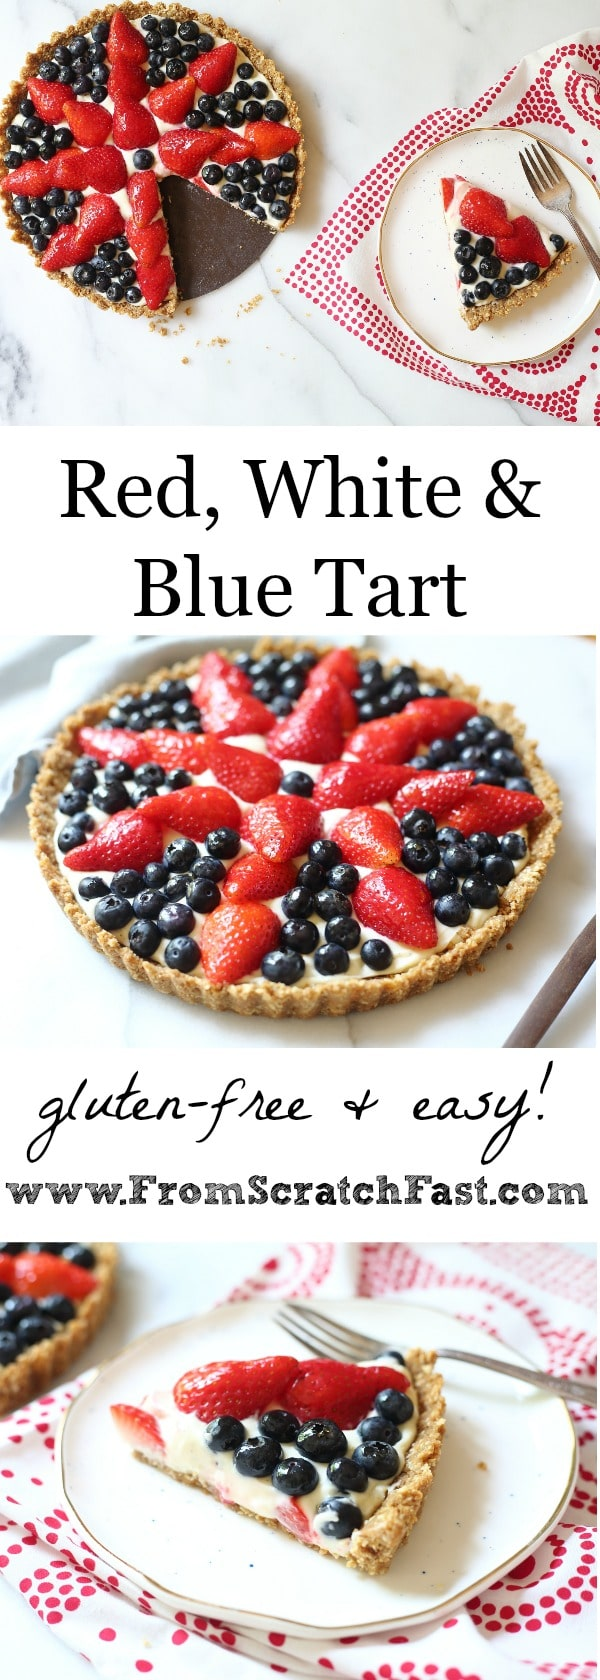 This gorgeous (gluten-free!) berry tart looks impressive, tastes even better, and couldn't be easier to make, perfect for the Fourth of July!